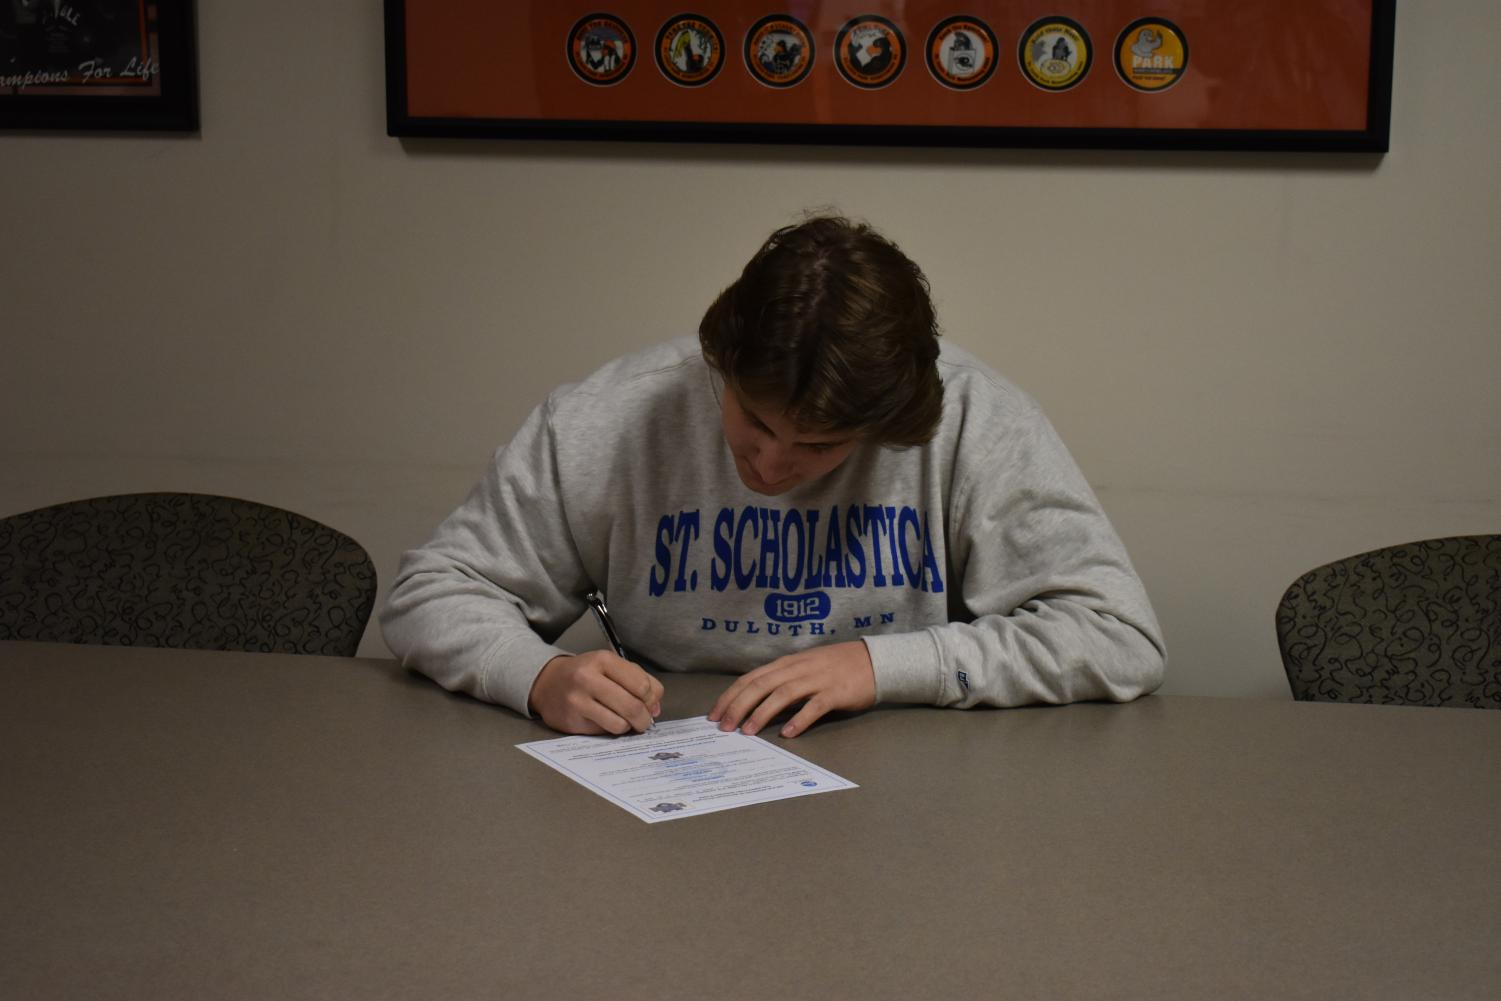 Senior Luke Boyum signs his commitment to the college of St. Scholastica in the athletic office. Boyum was accompanied by his coach, friends and family while he signed.